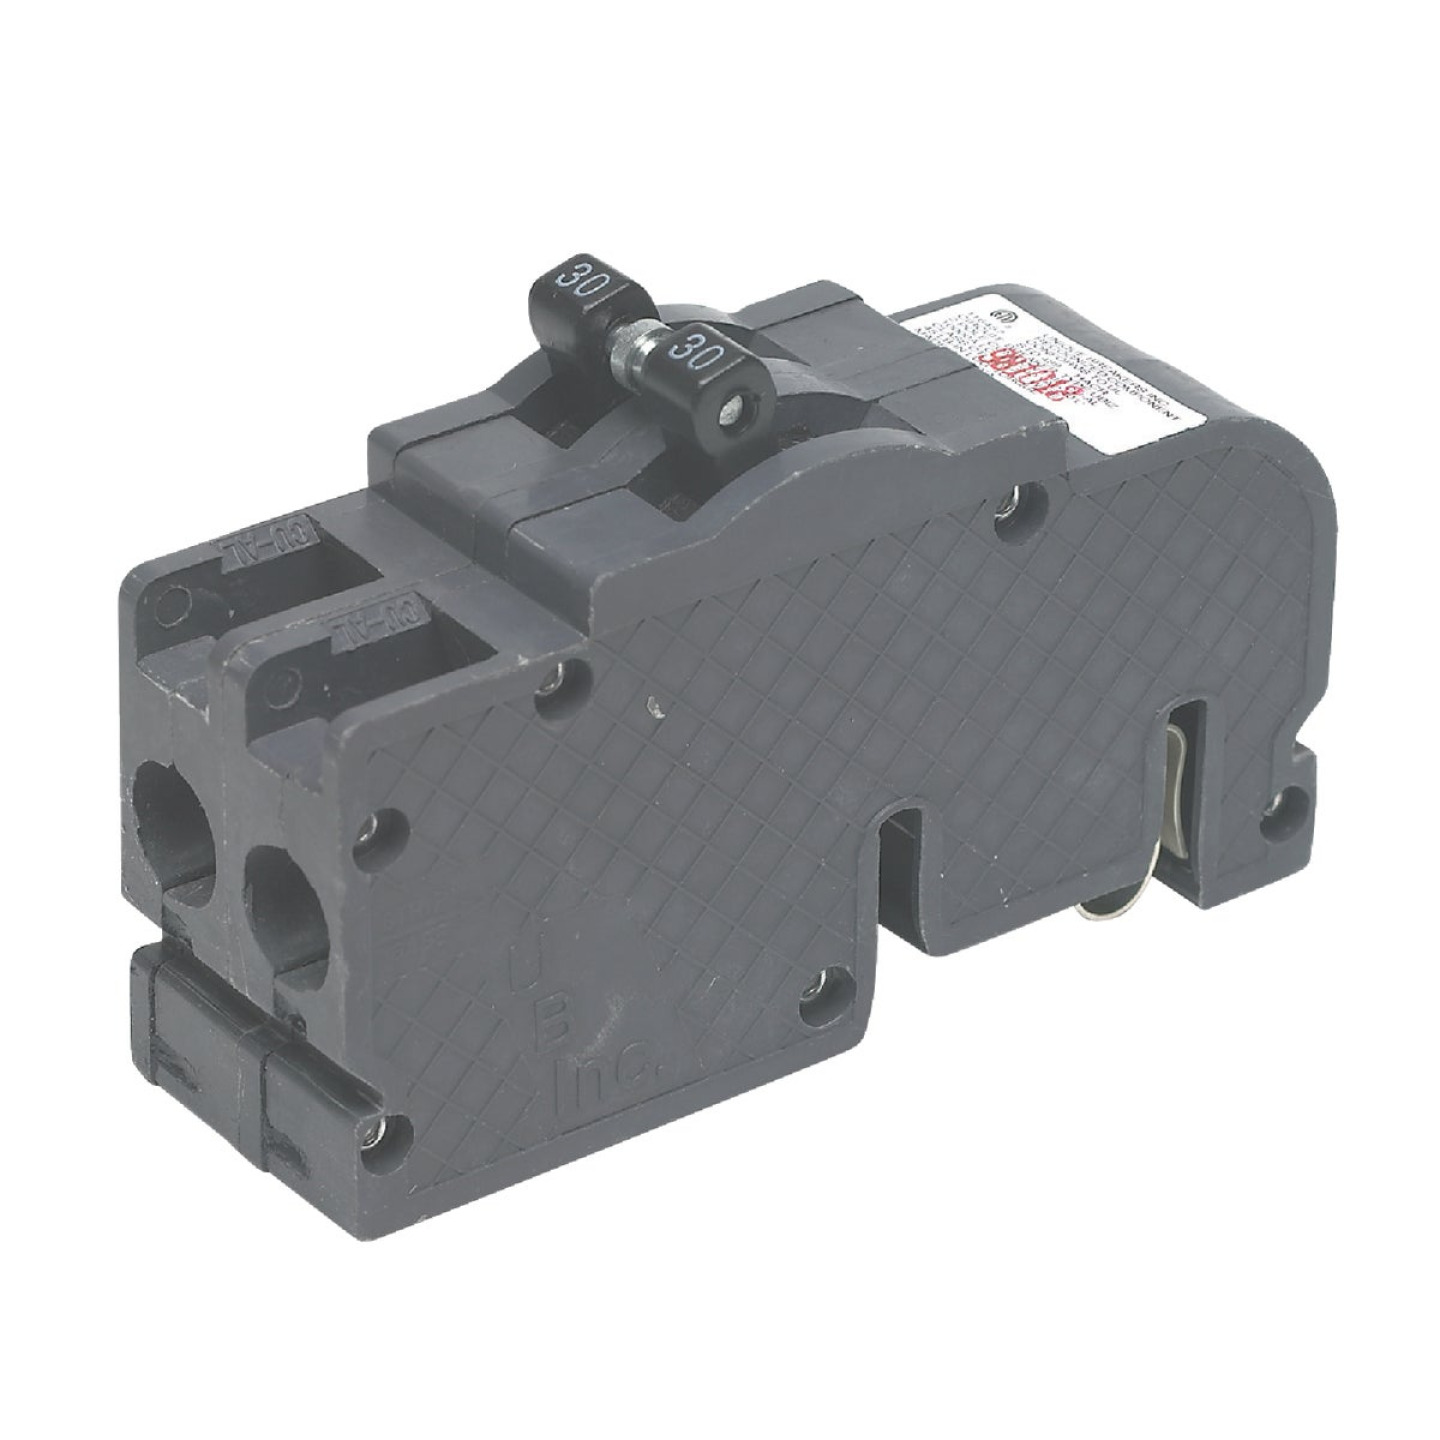 Connecticut Electric 50A Double-Pole Standard Trip Packaged Replacement Circuit Breaker For Zinsco Image 1